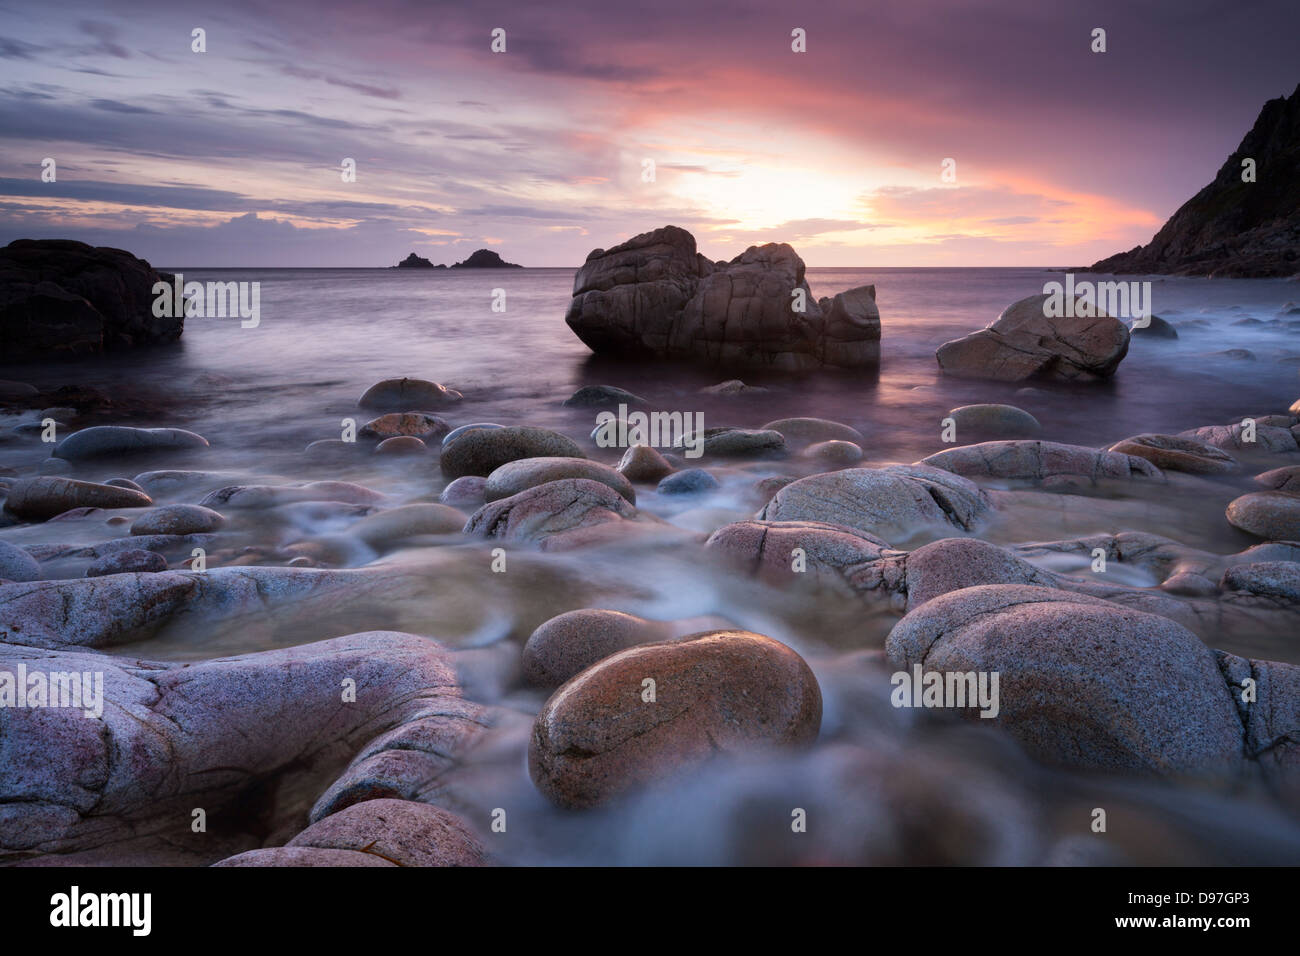 Sunset over the Brisons and Porth Nanven, a rocky cove near Land's End, Cornwall, England. Spring (April) 2012. - Stock Image